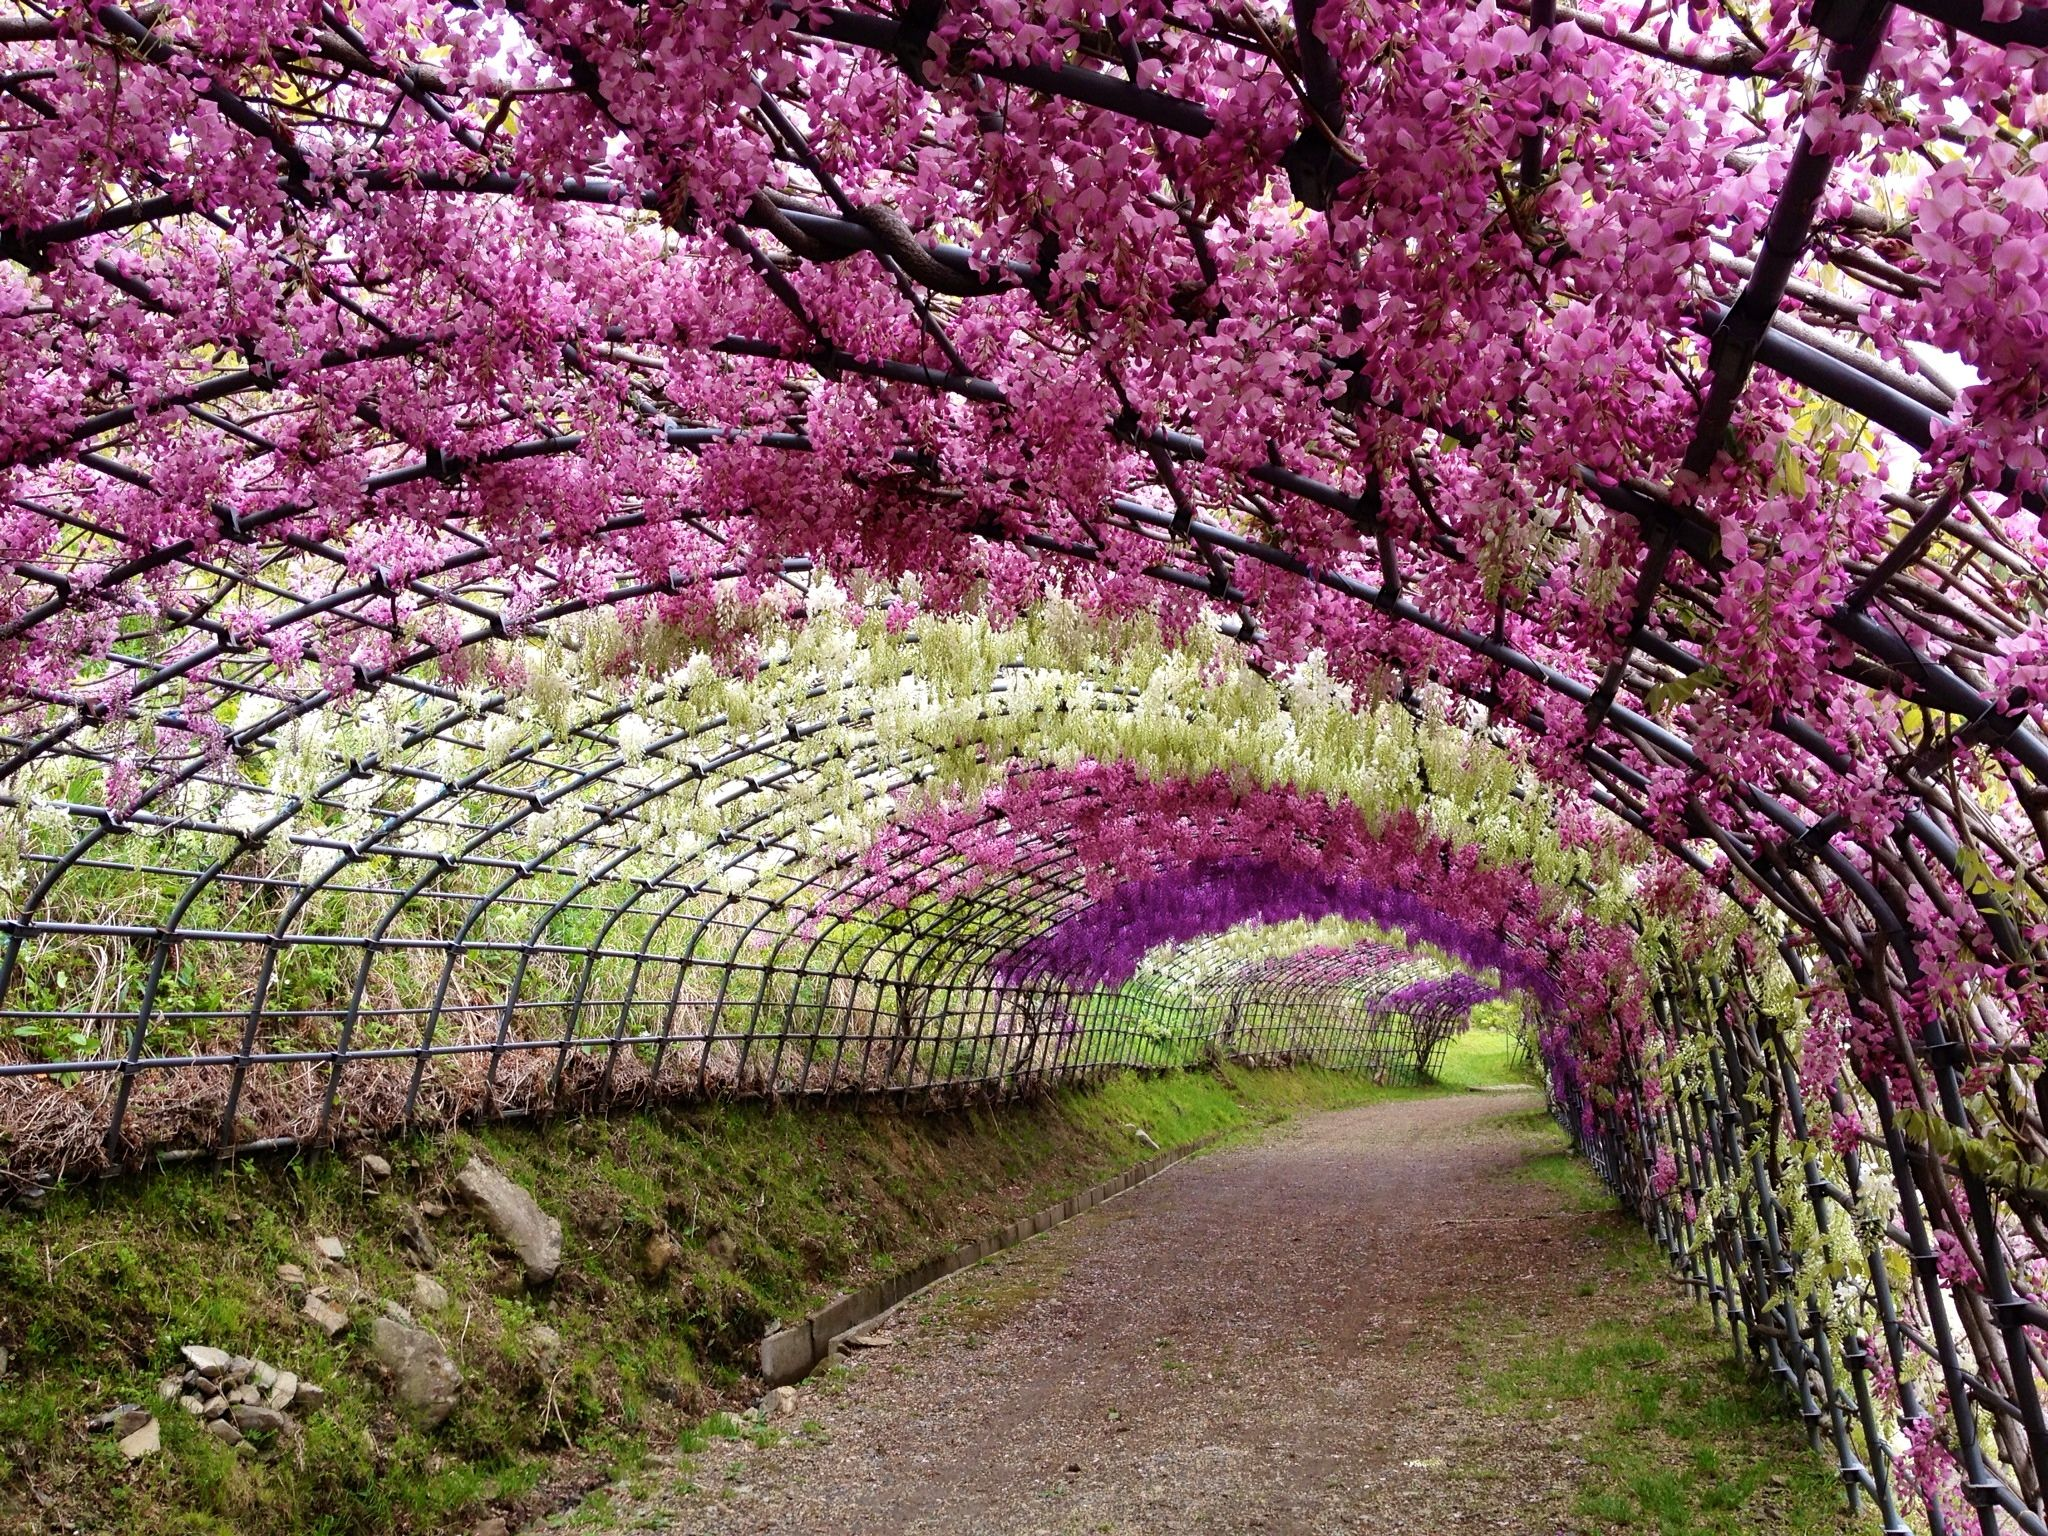 wisteria trellis, I could do this, maybe. Lol